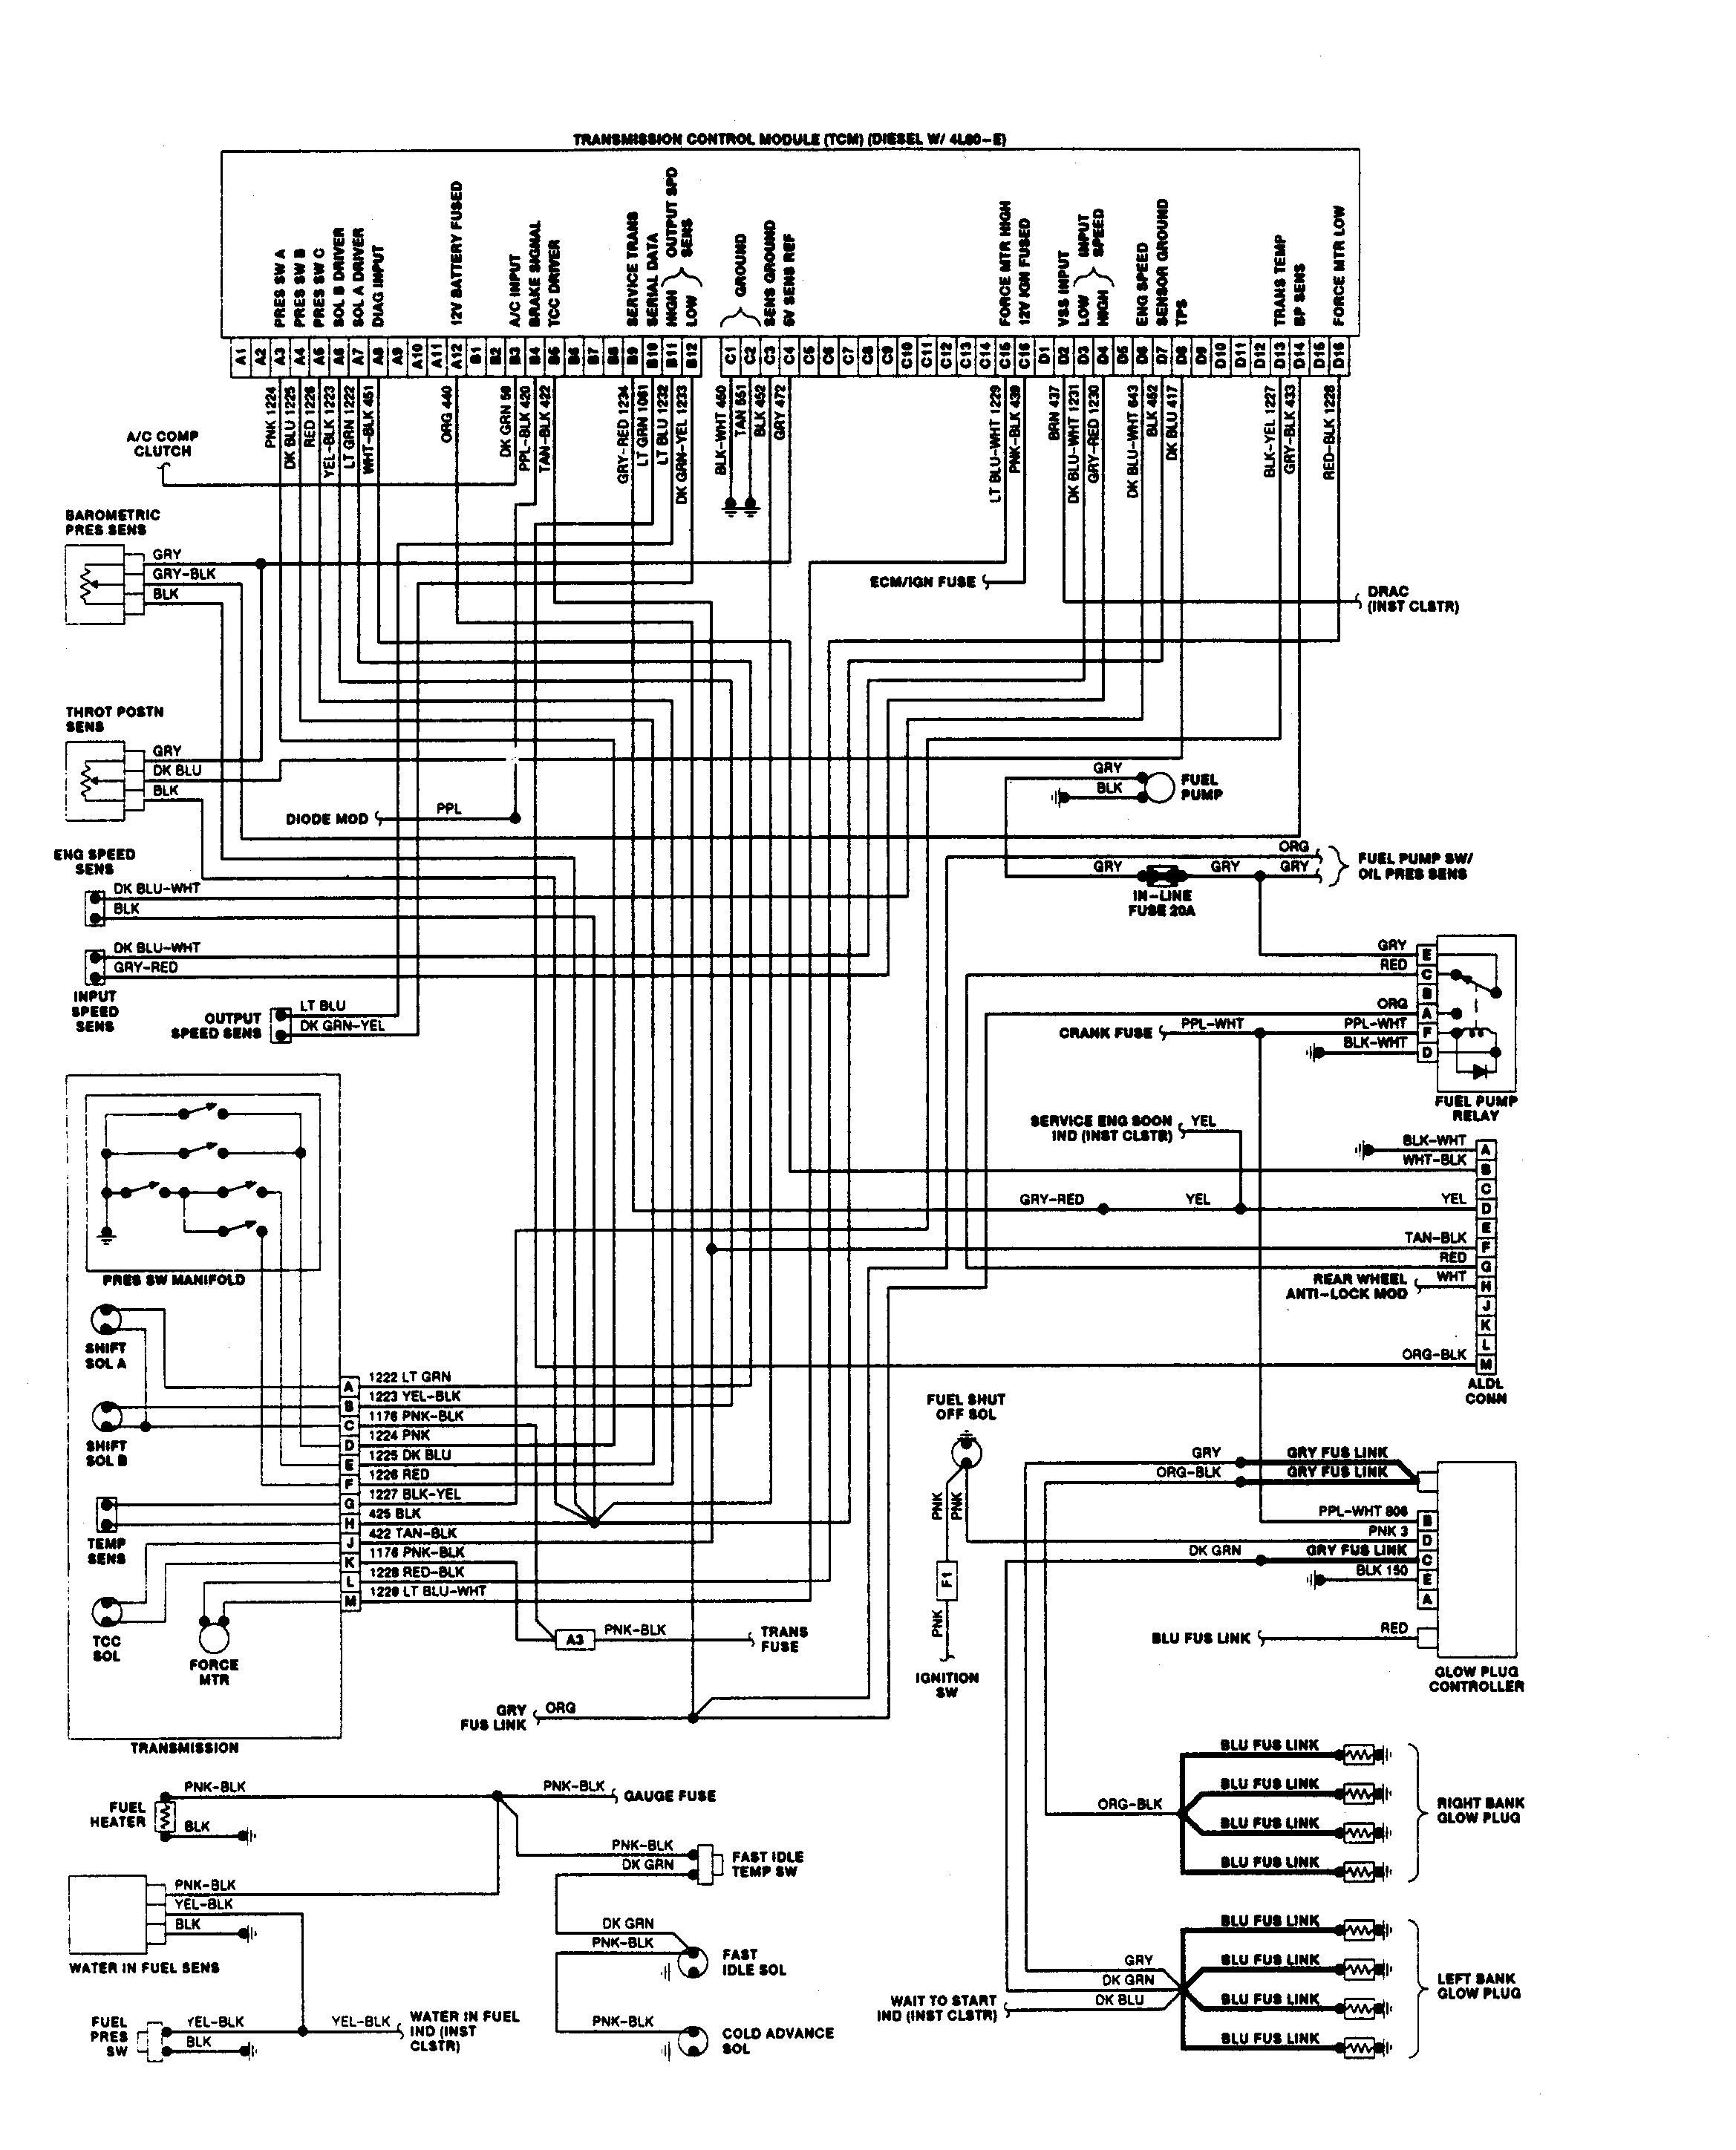 1990 chevy p30 wiring diagram wiring diagram load 1990 chevy rv wiring diagram [ 2338 x 2896 Pixel ]